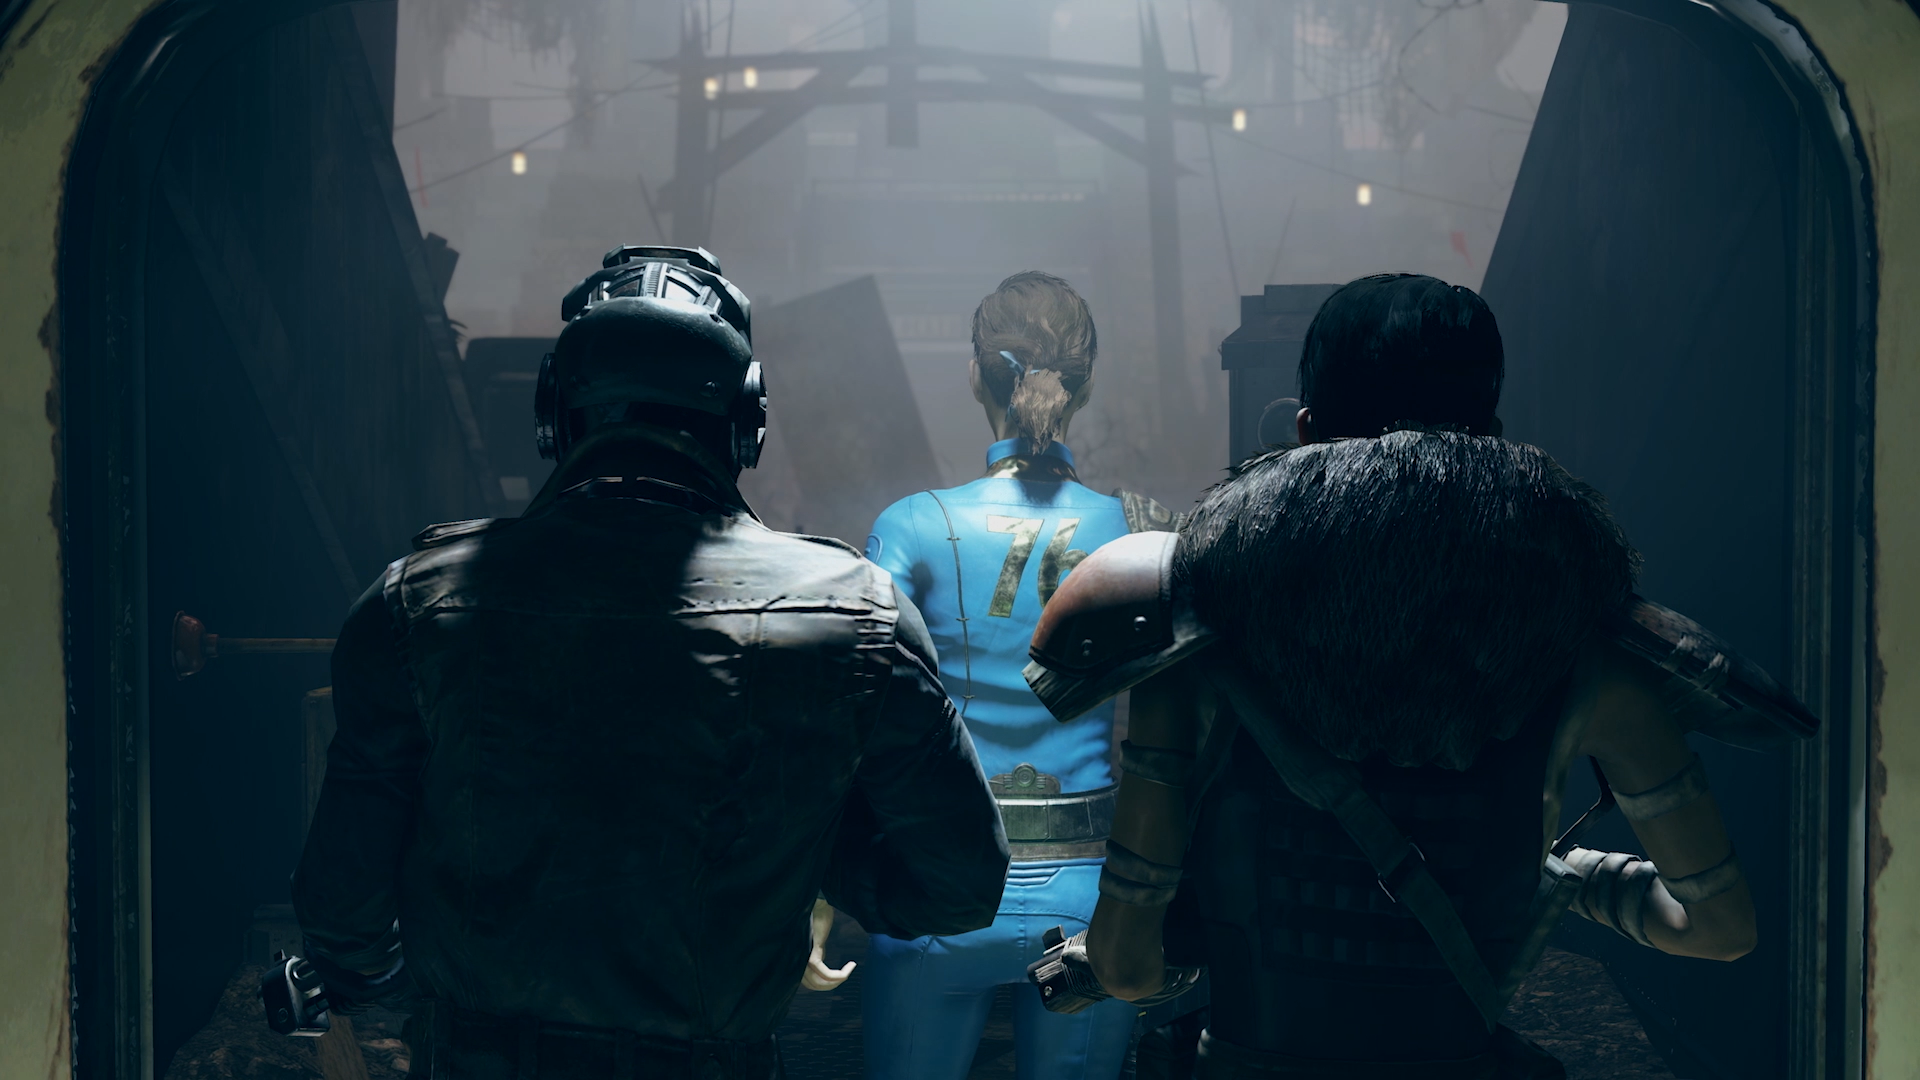 Bethesda working on hotfixes for broken Fallout 76 subscription features